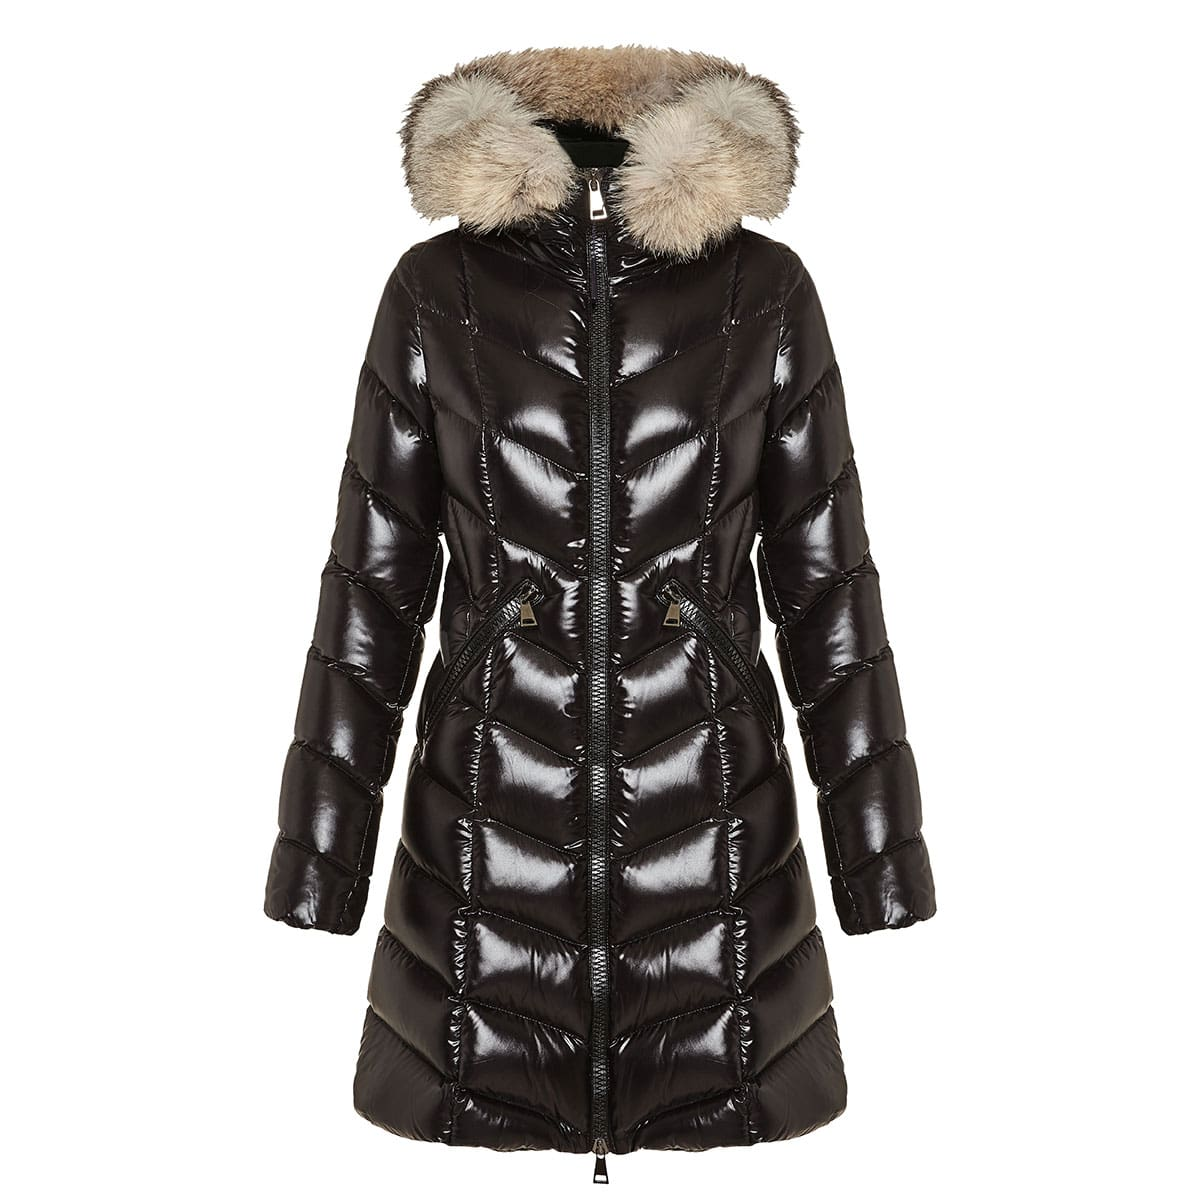 Fulmarus long quilted down jacket